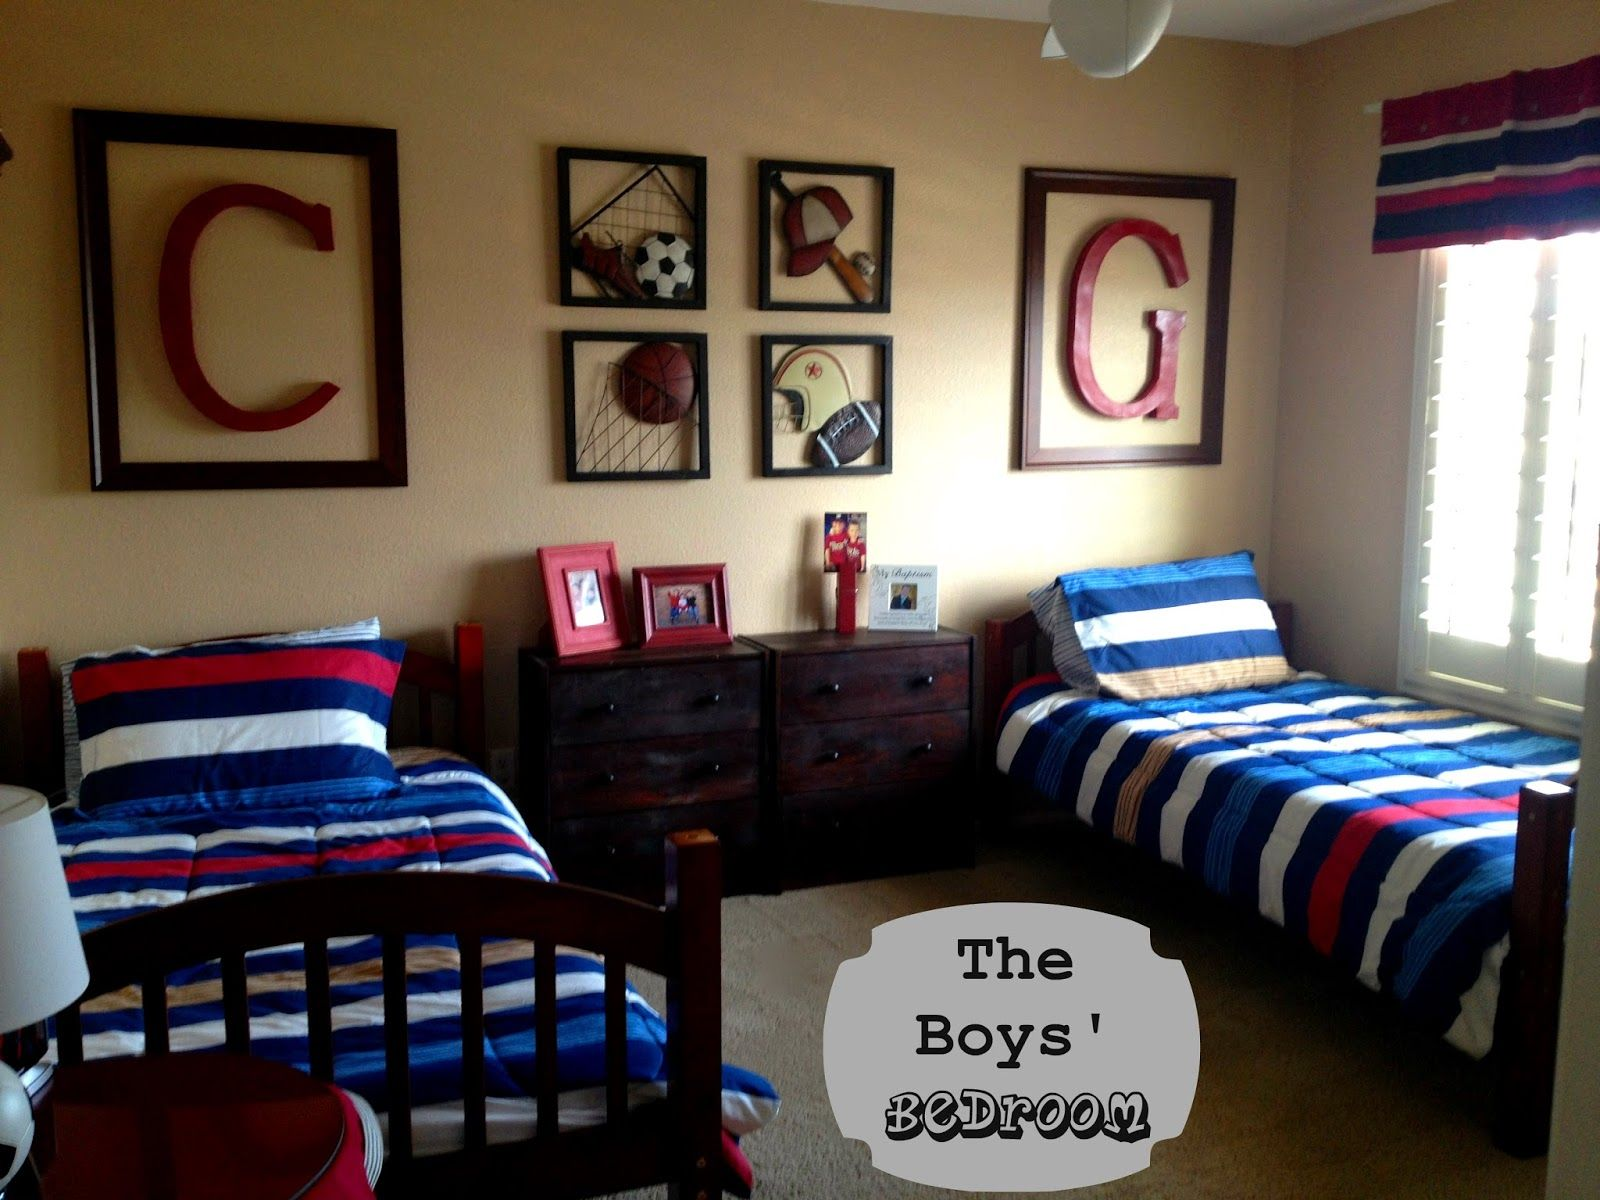 the boys sports themed bedroom i love the large framed initials - Sports Bedroom Decorating Ideas